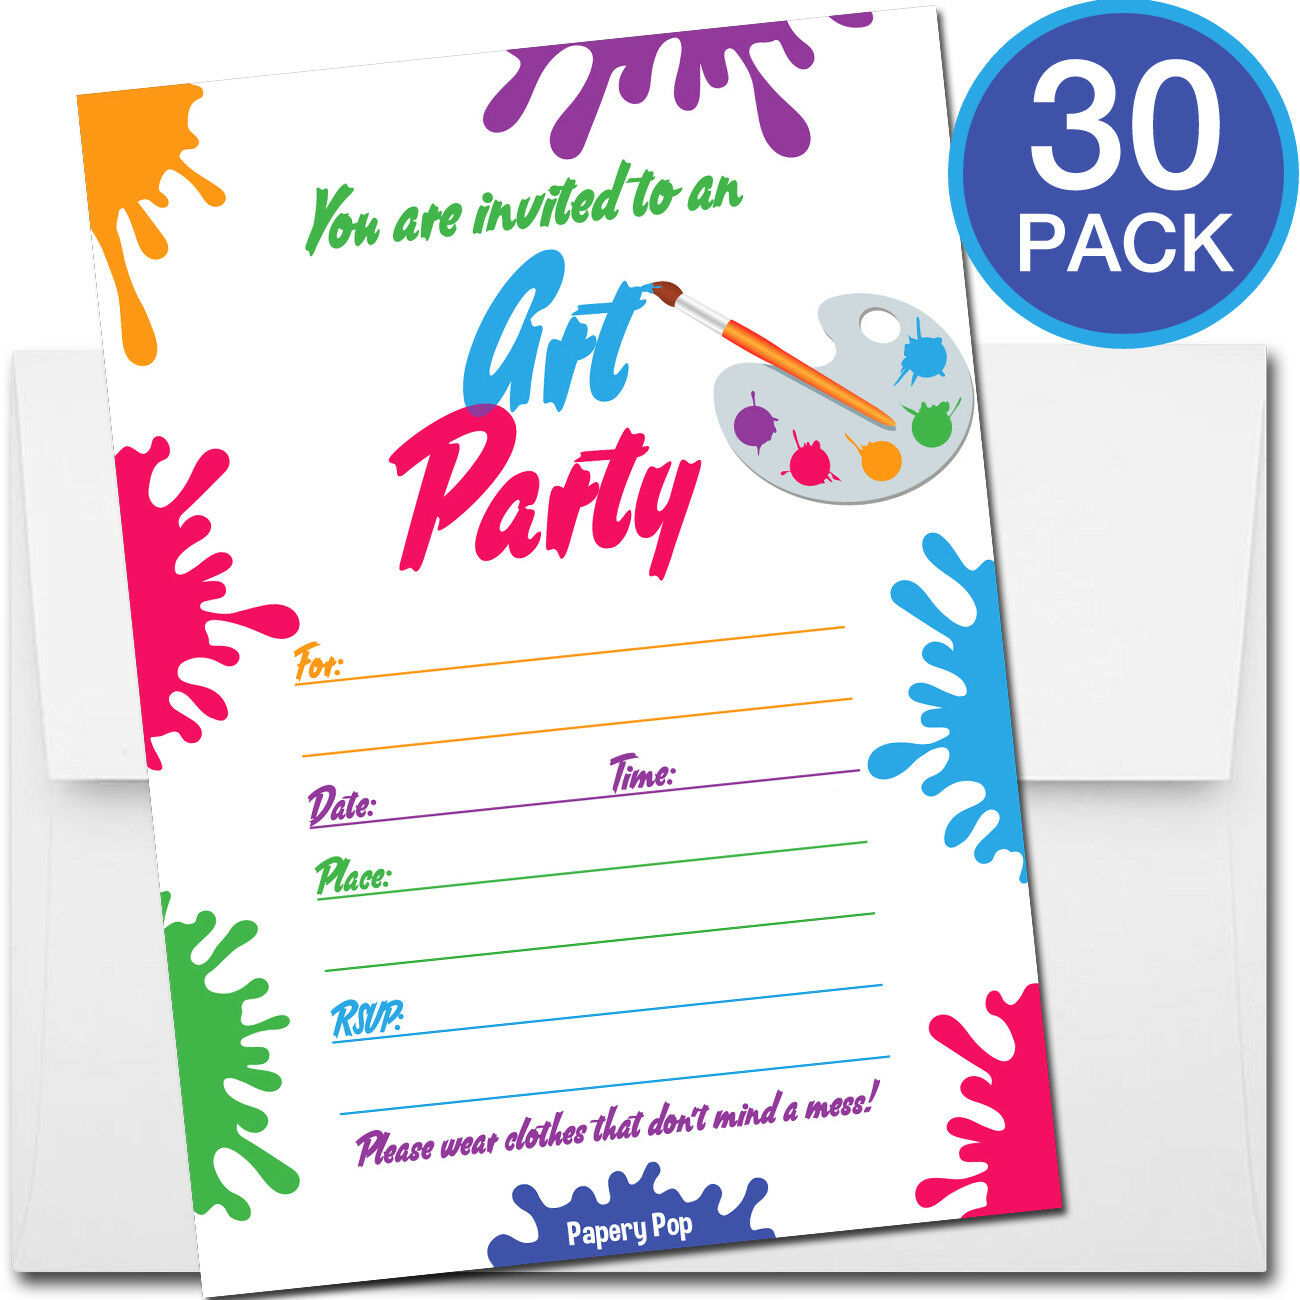 30 ART PARTY Invitations with Envelopes - Kid Birthday Party Boy ...